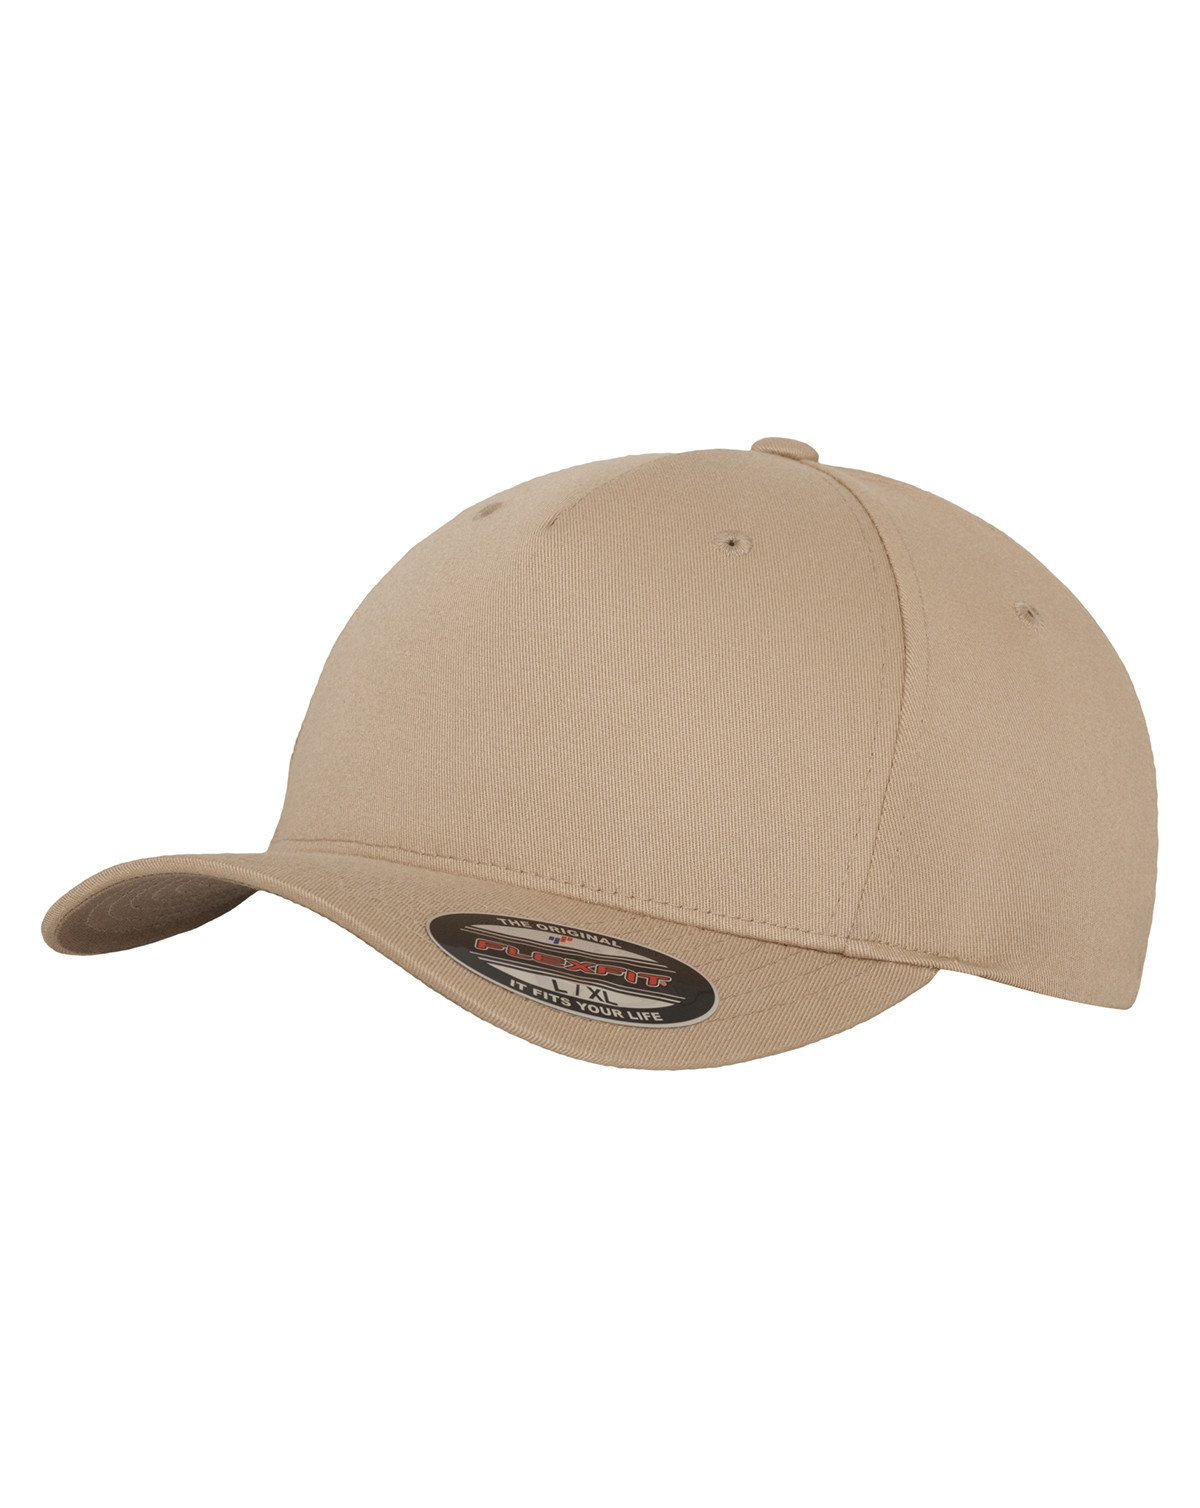 Flexfit 5 Panel Cap (Khaki, S/M)